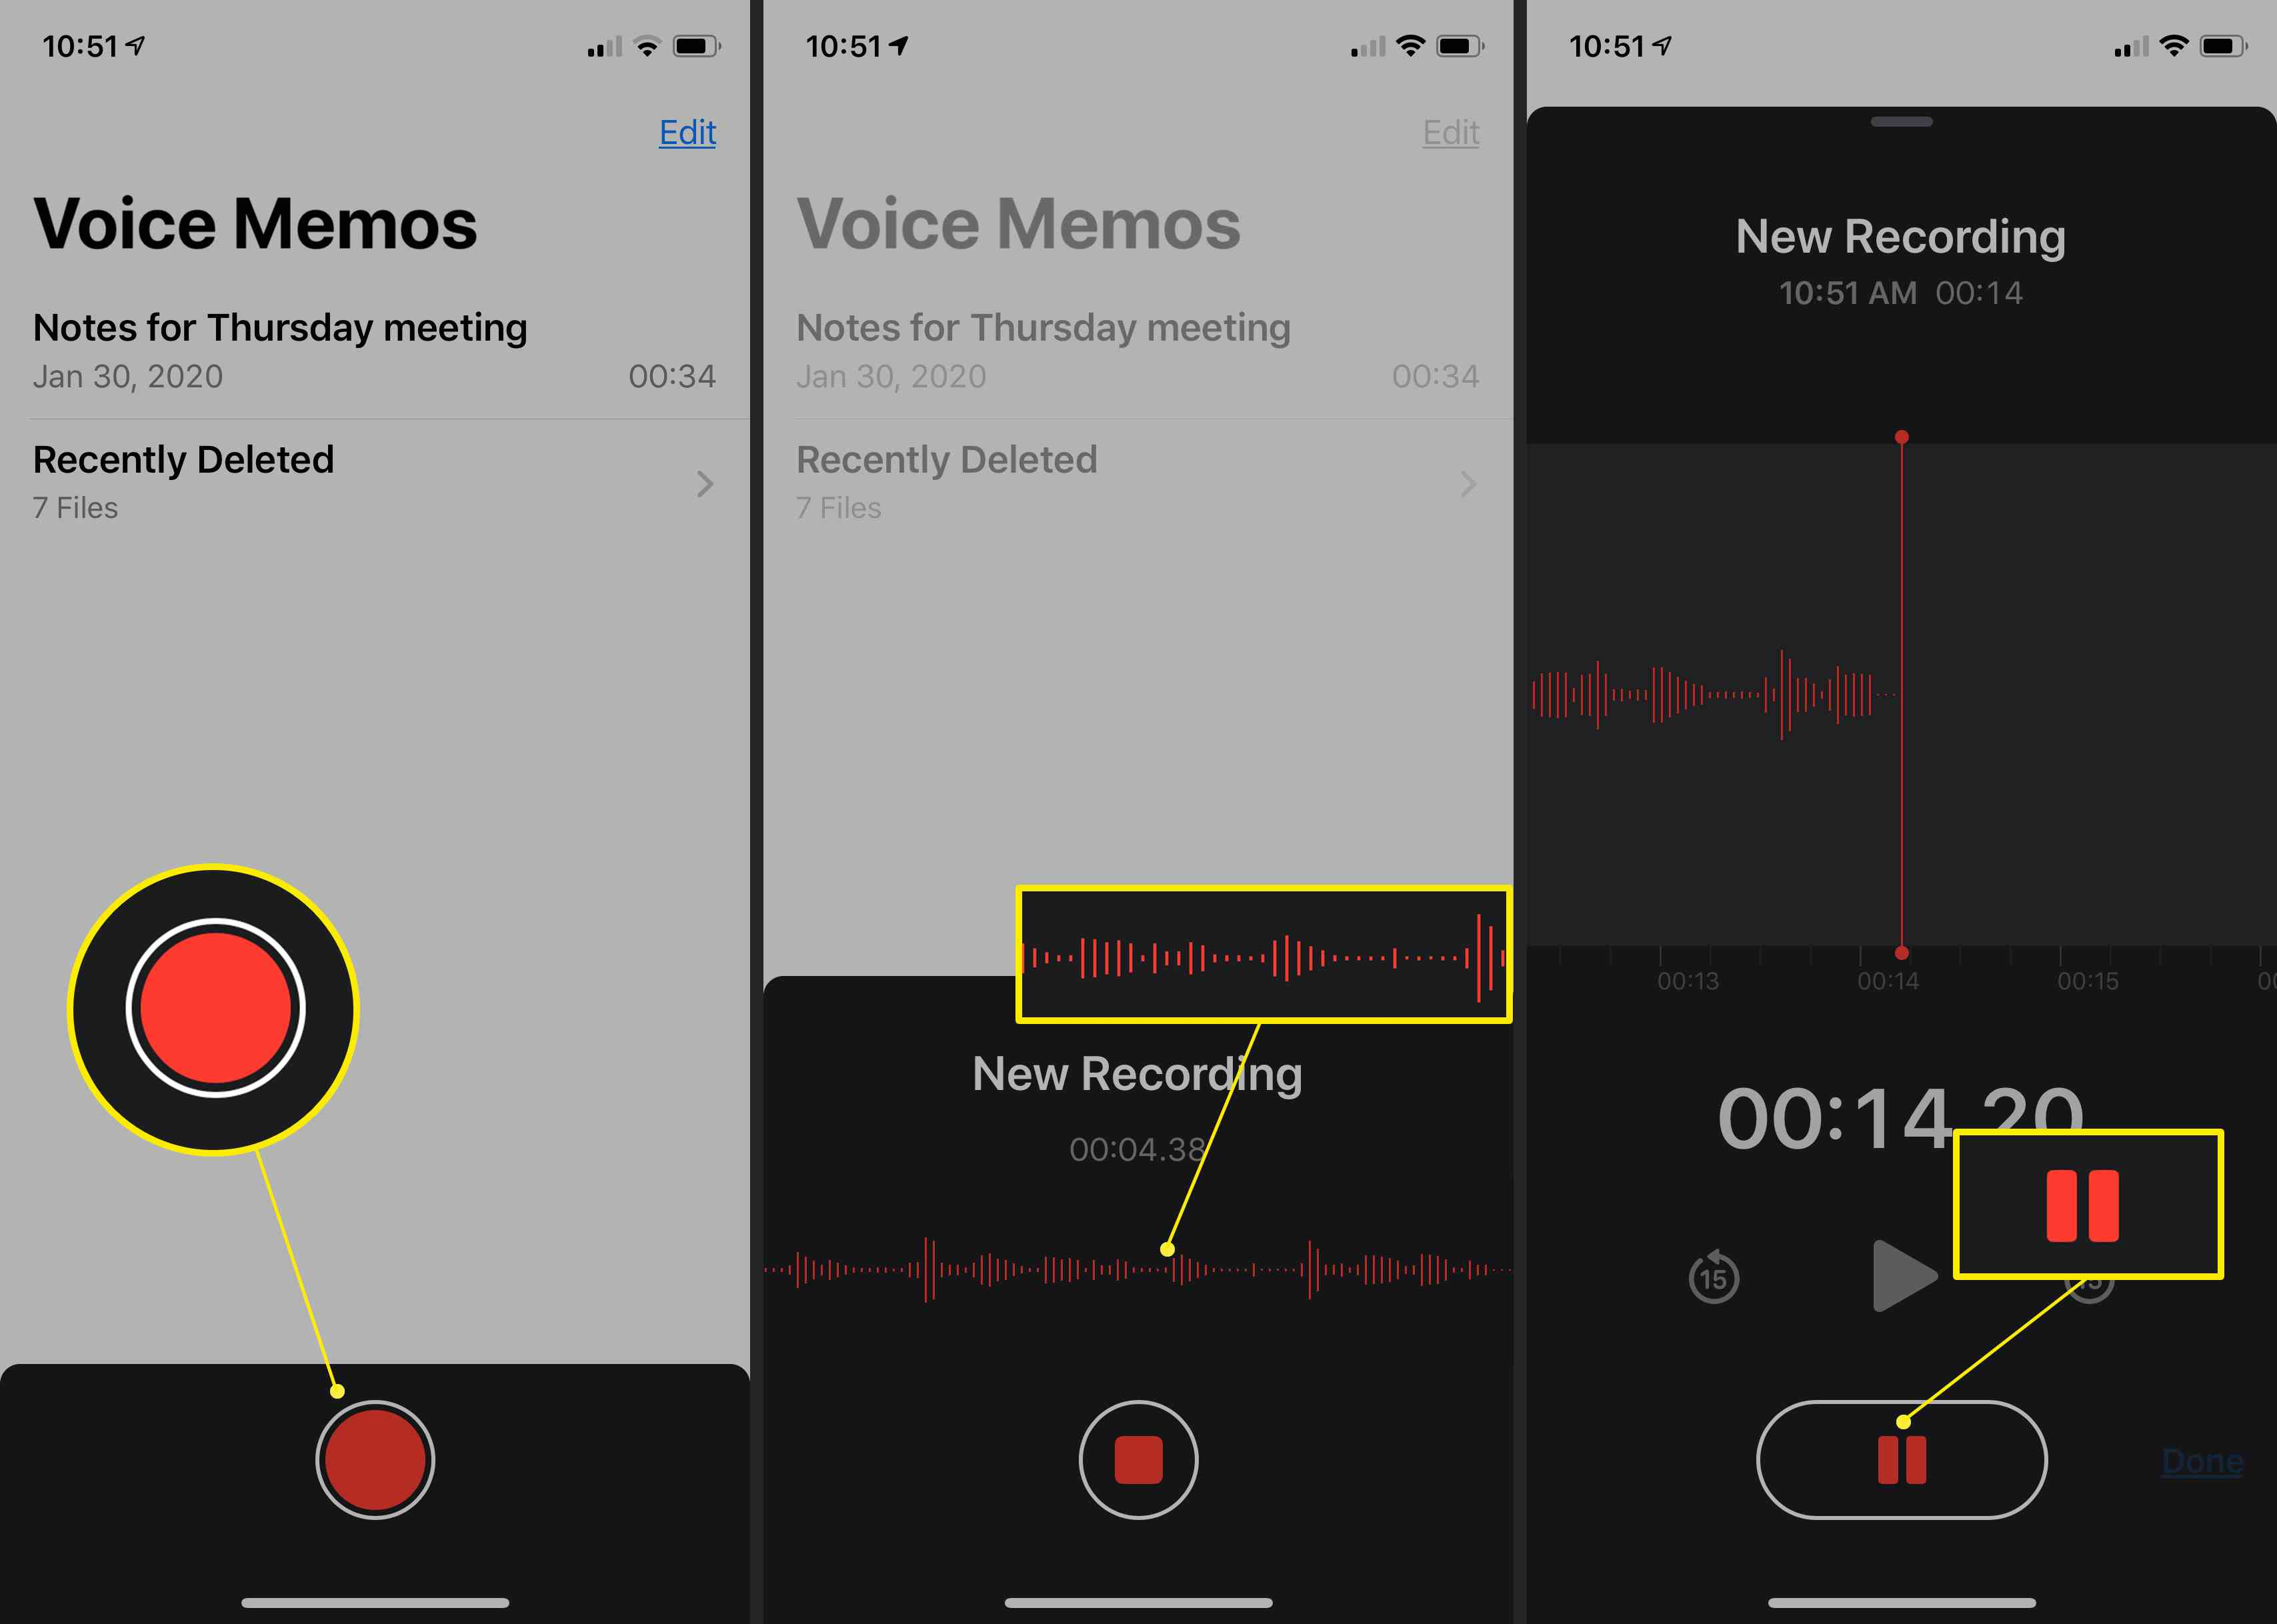 Voice Memos app on the iPhone showng new recording